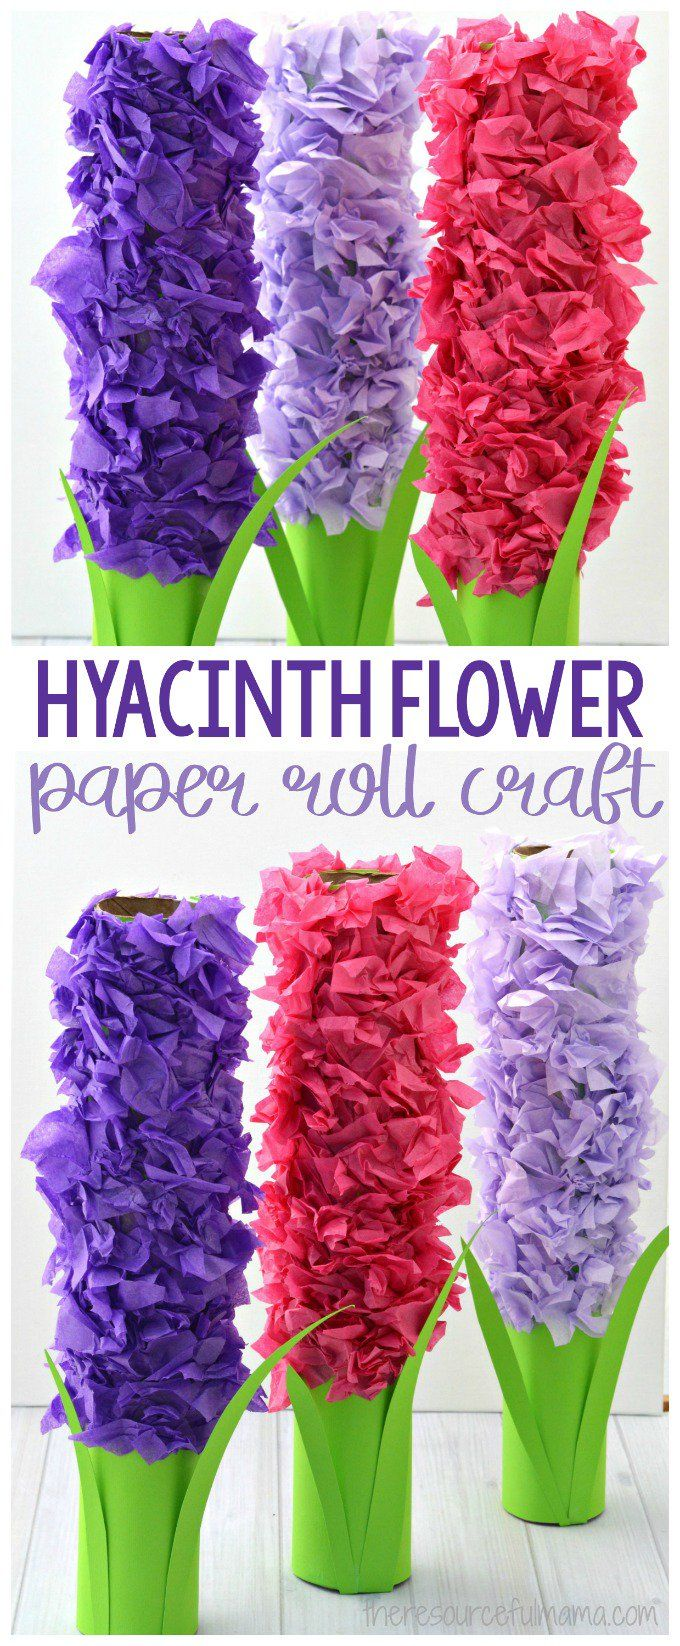 Transform paper towel rolls and tissue paper into a lovely hyacinth flower craft kids can make this spring. #kidscraft #flowers #crafts #spring